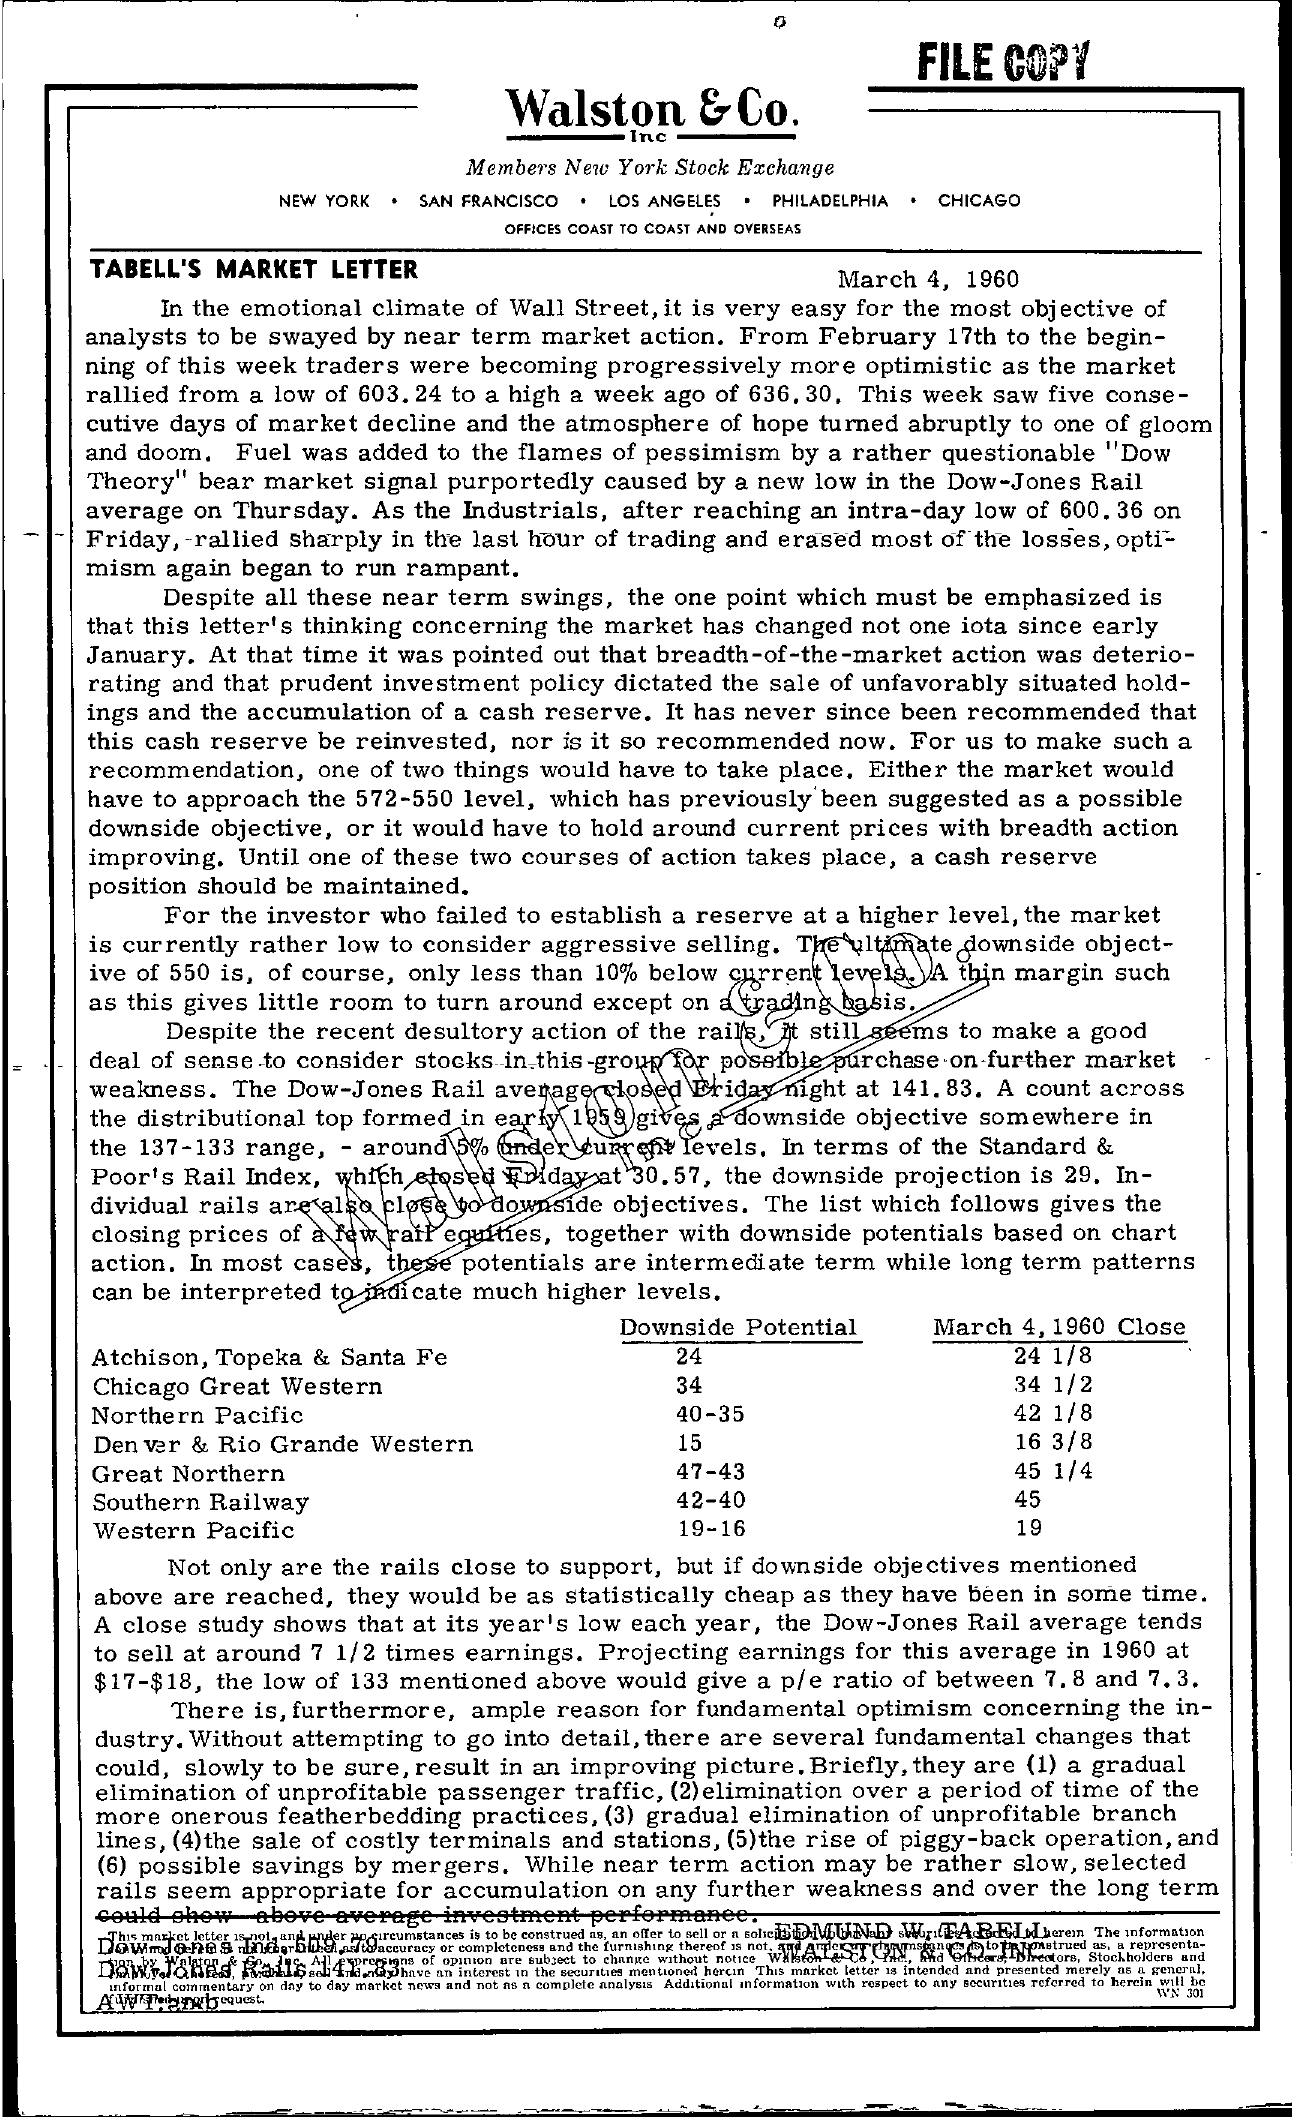 Tabell's Market Letter - March 04, 1960